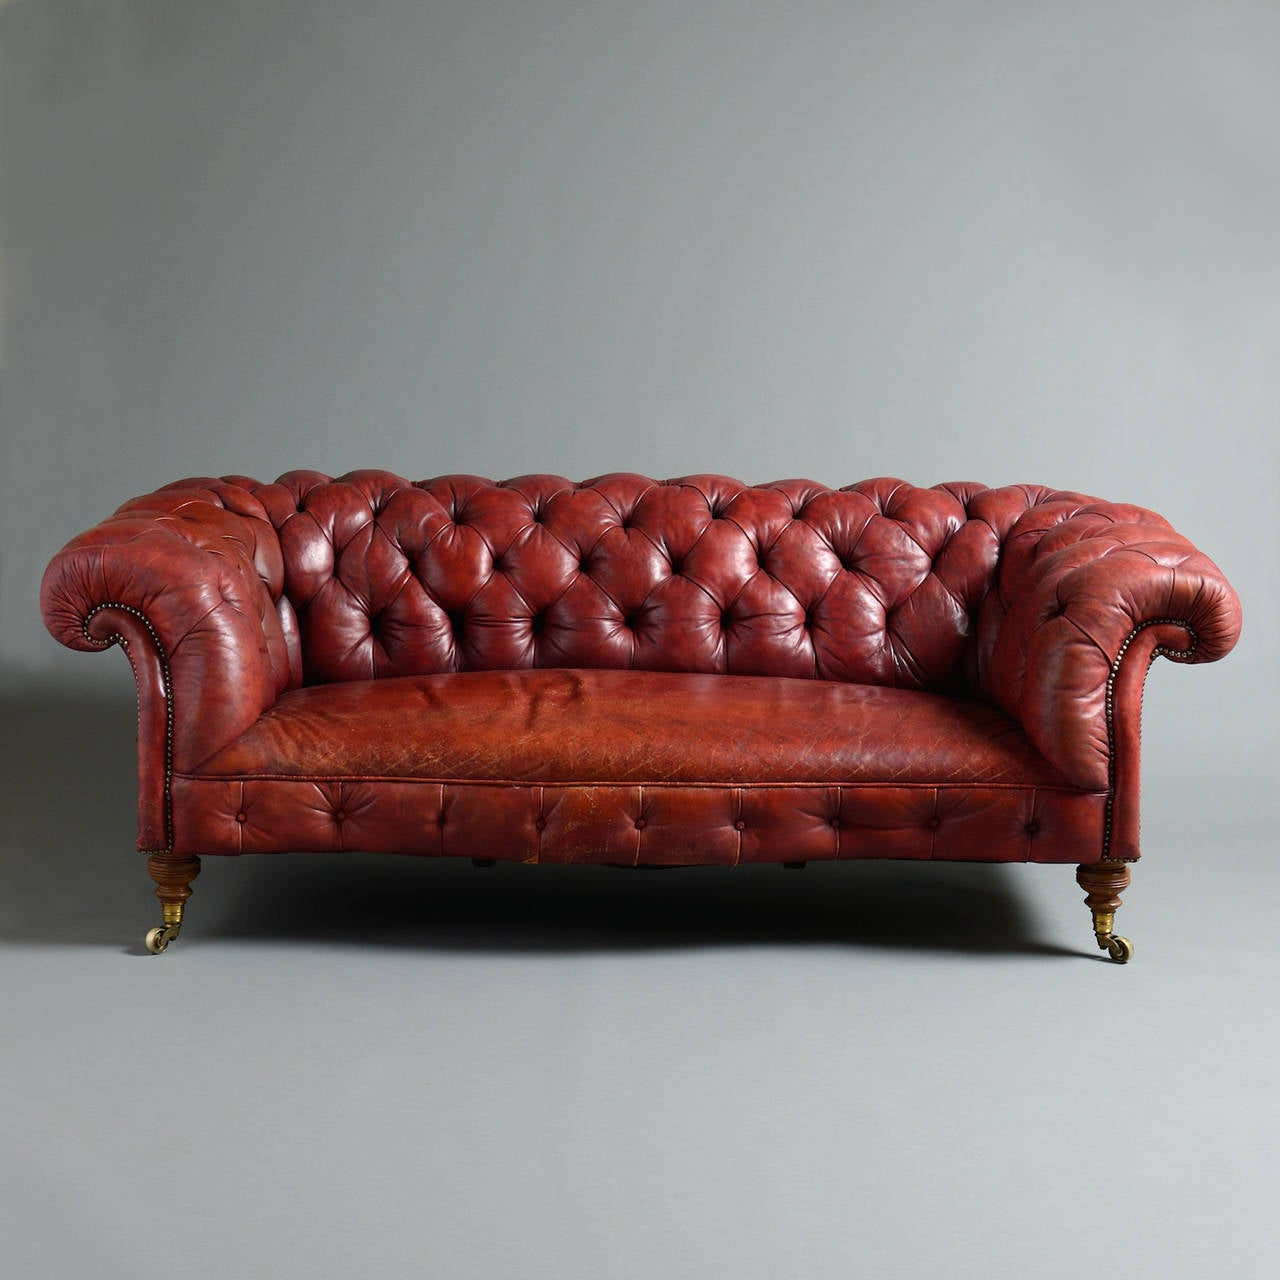 latest leather red italian design genuine couches sectional shape item set wedding sofa hot modern corner l sexy couch new